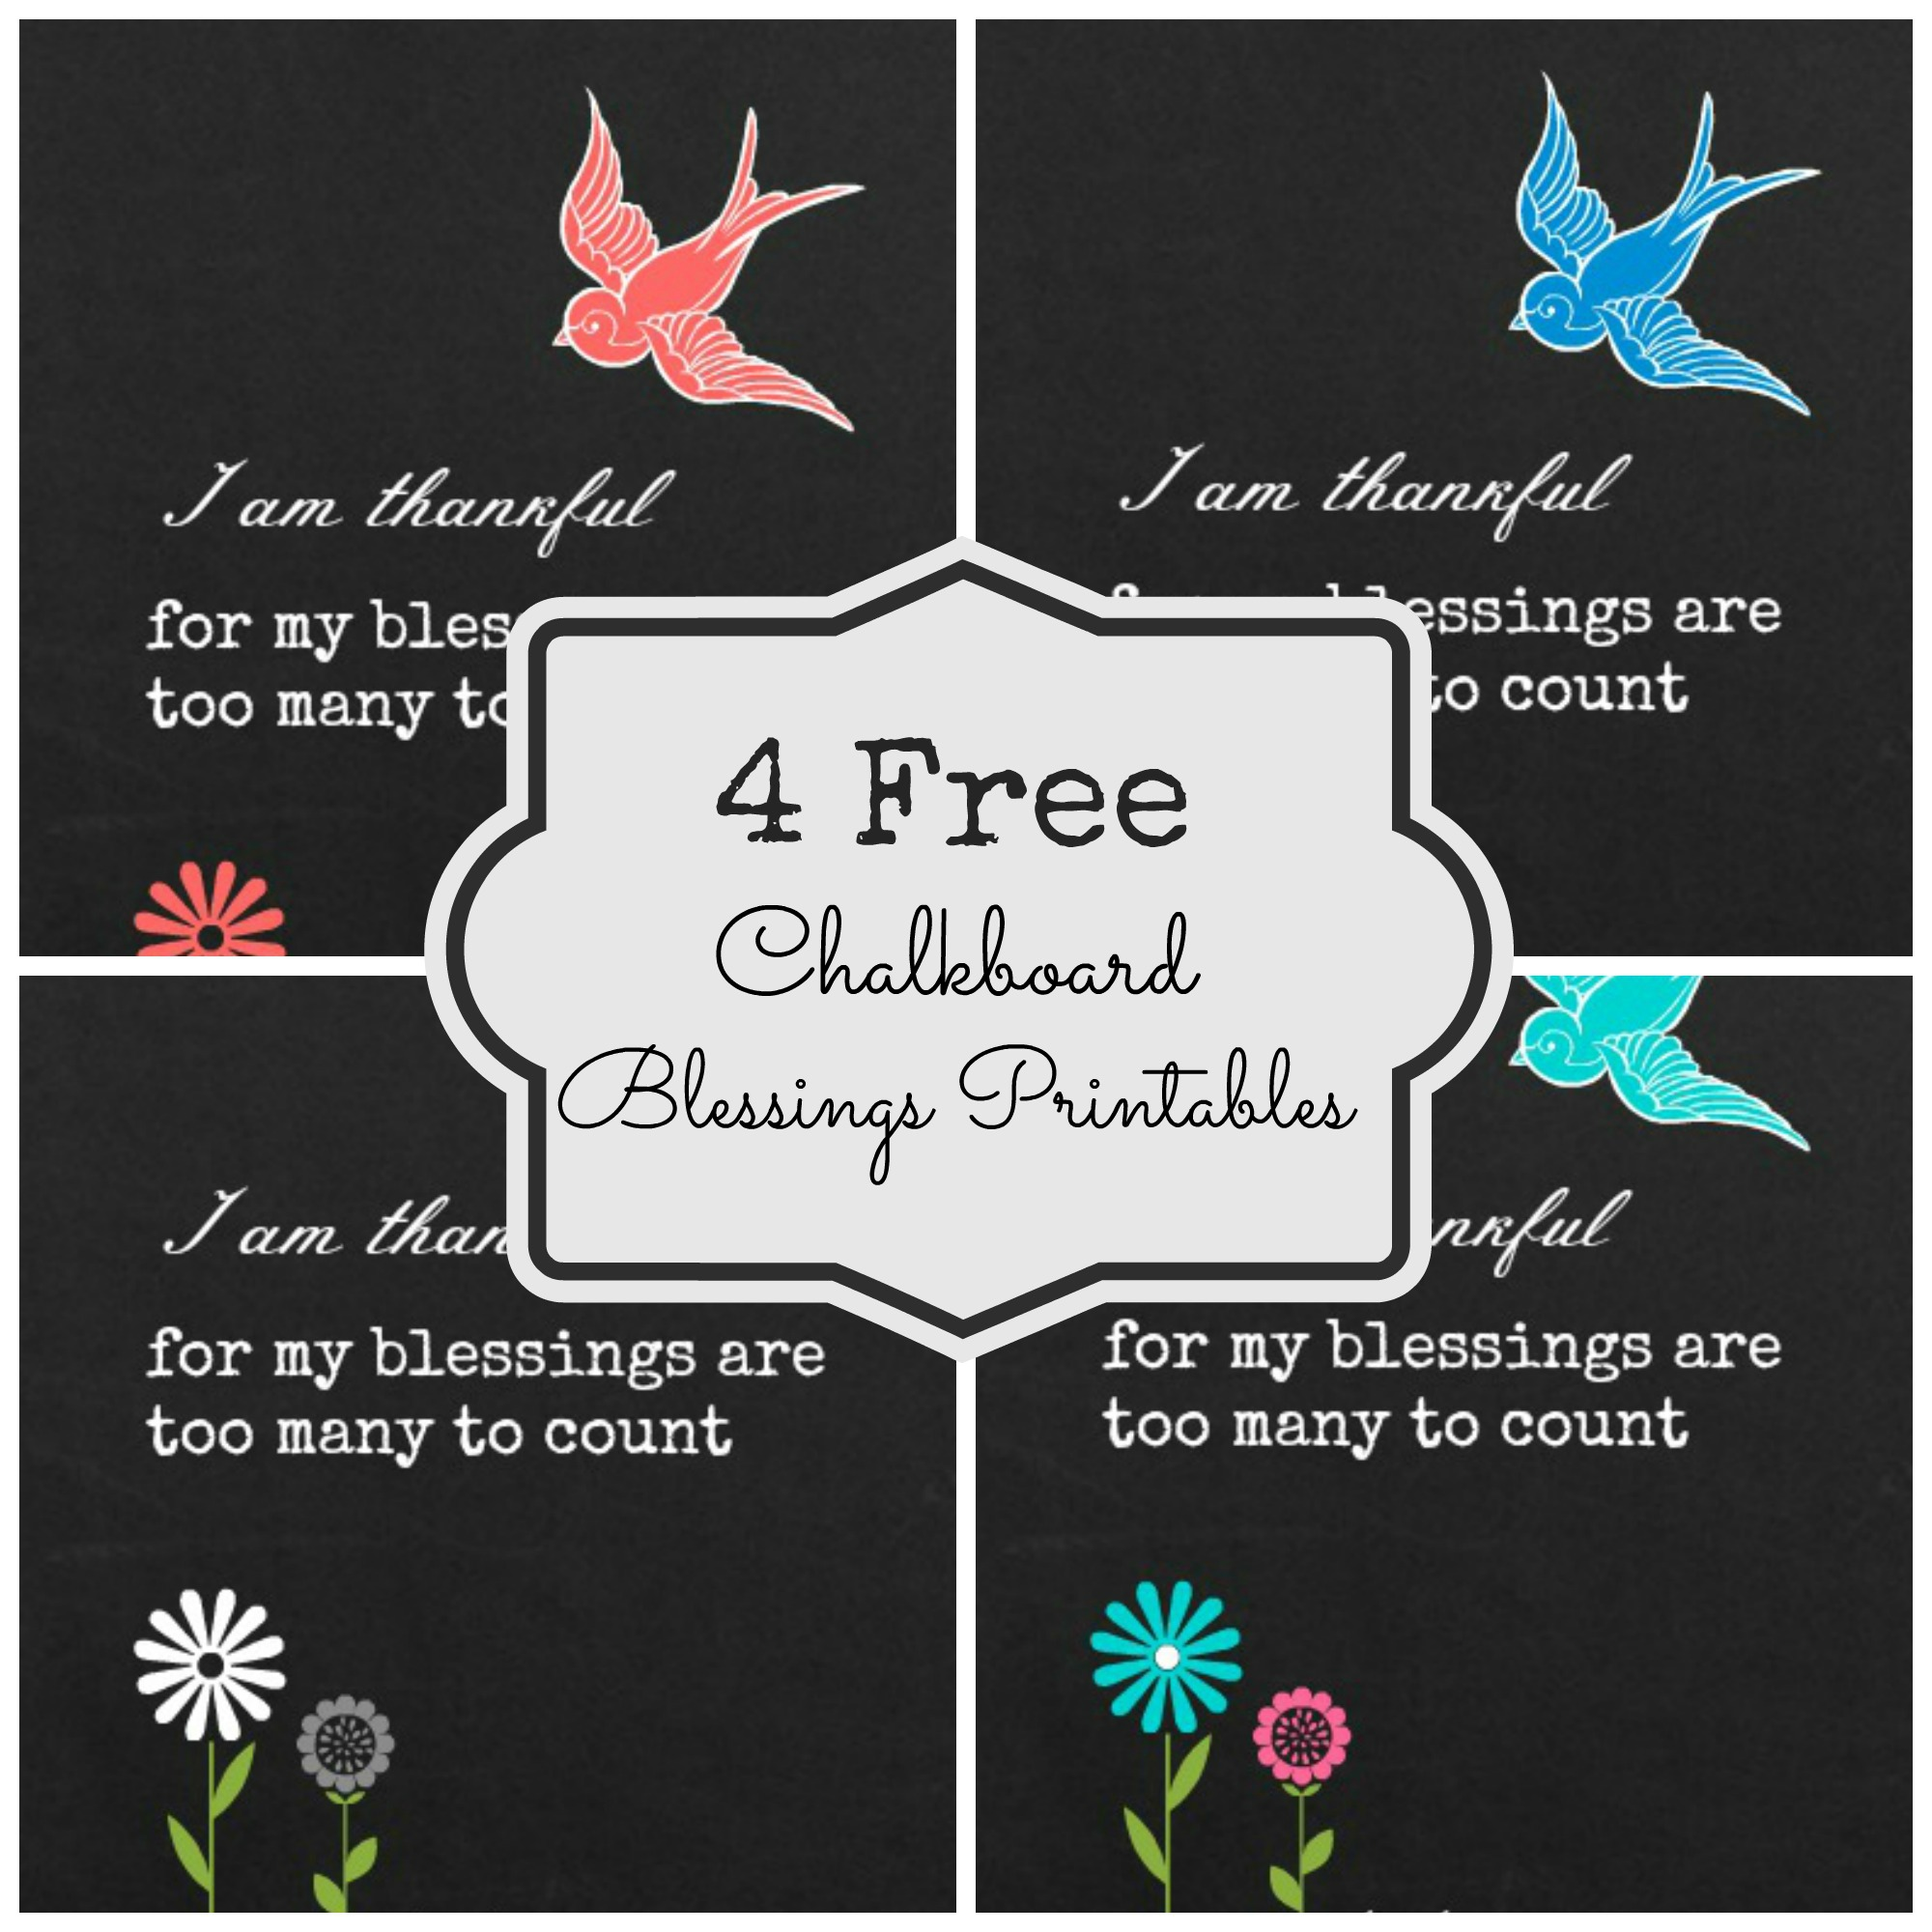 photograph regarding Free Chalkboard Printable referred to as 4 Cost-free Chalkboard Printables grateful blessings - Fox